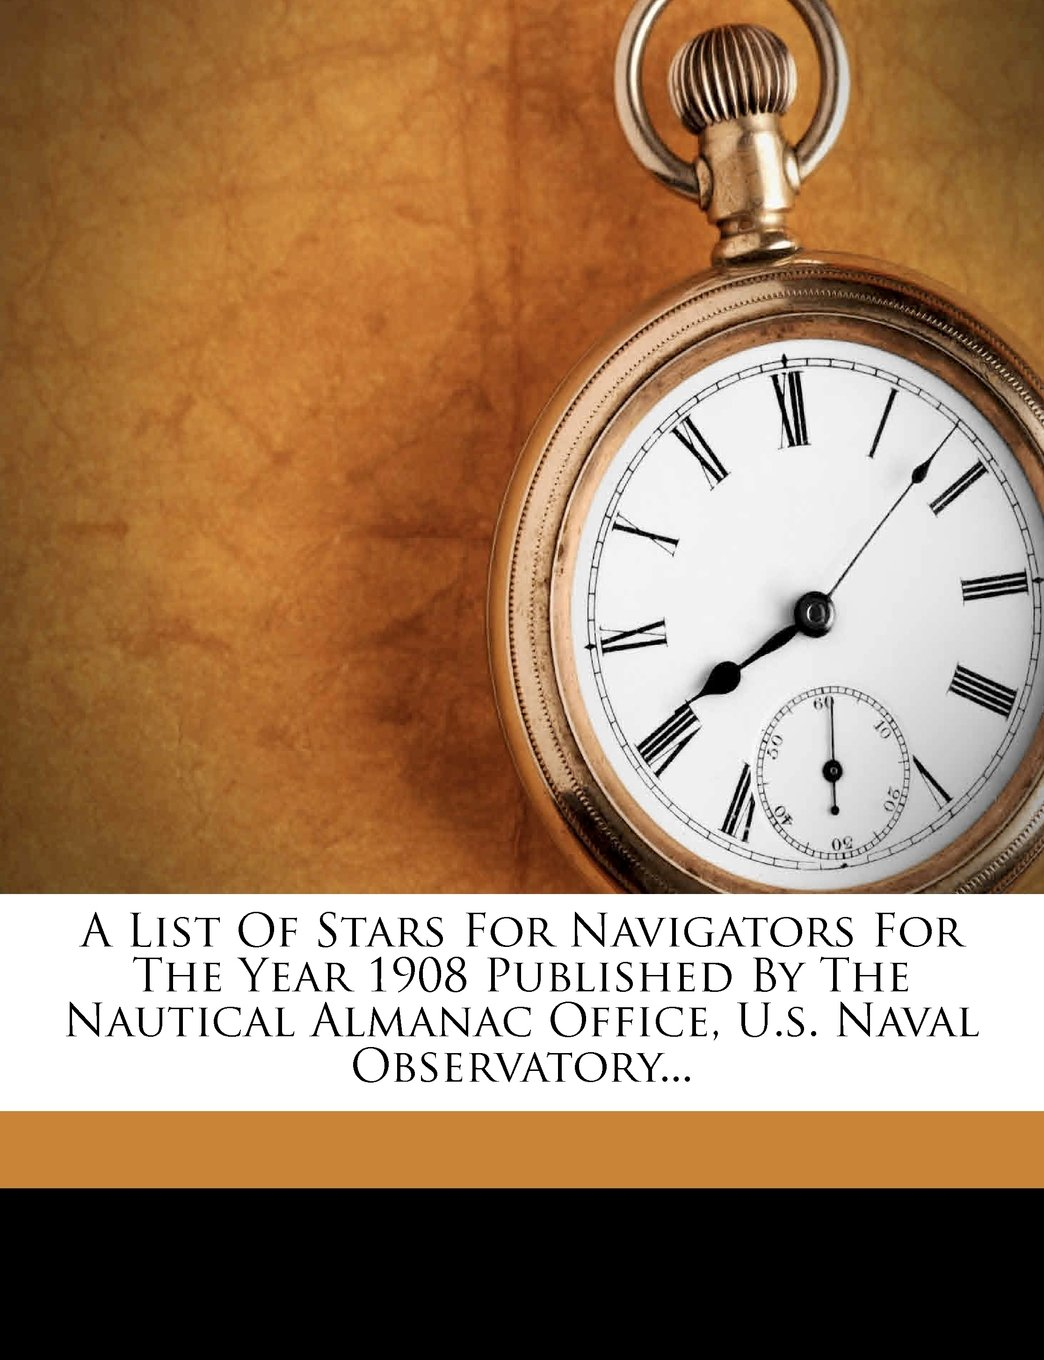 A List of Stars for Navigators for the Year 1908 Published by the Nautical Almanac Office, U.S. Naval Observatory... PDF